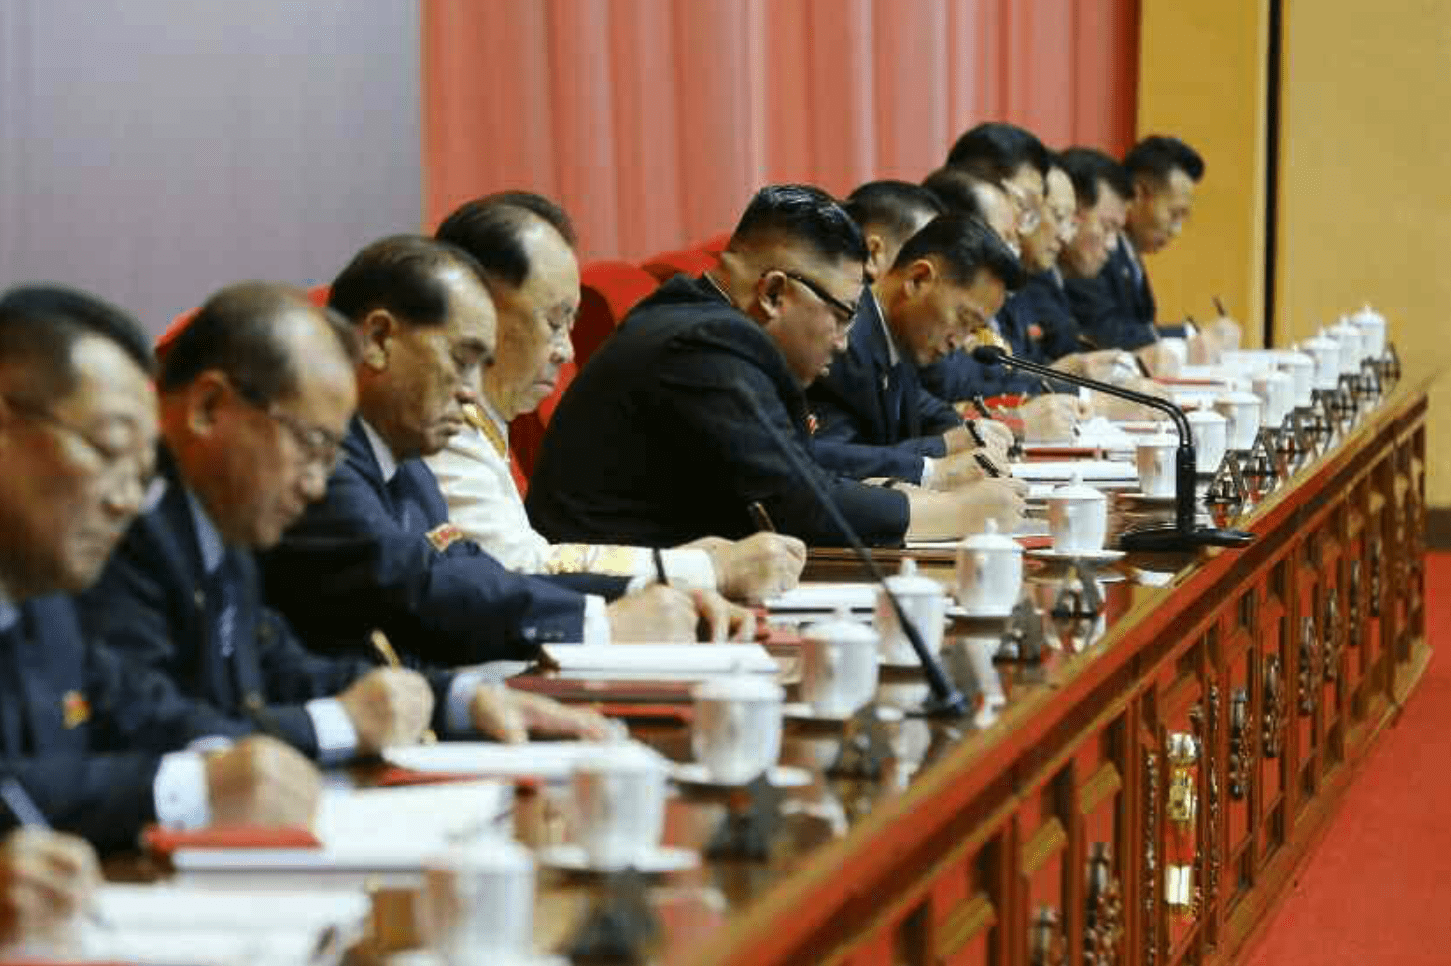 What to make of North Korea's massive Eighth Party Congress reveal